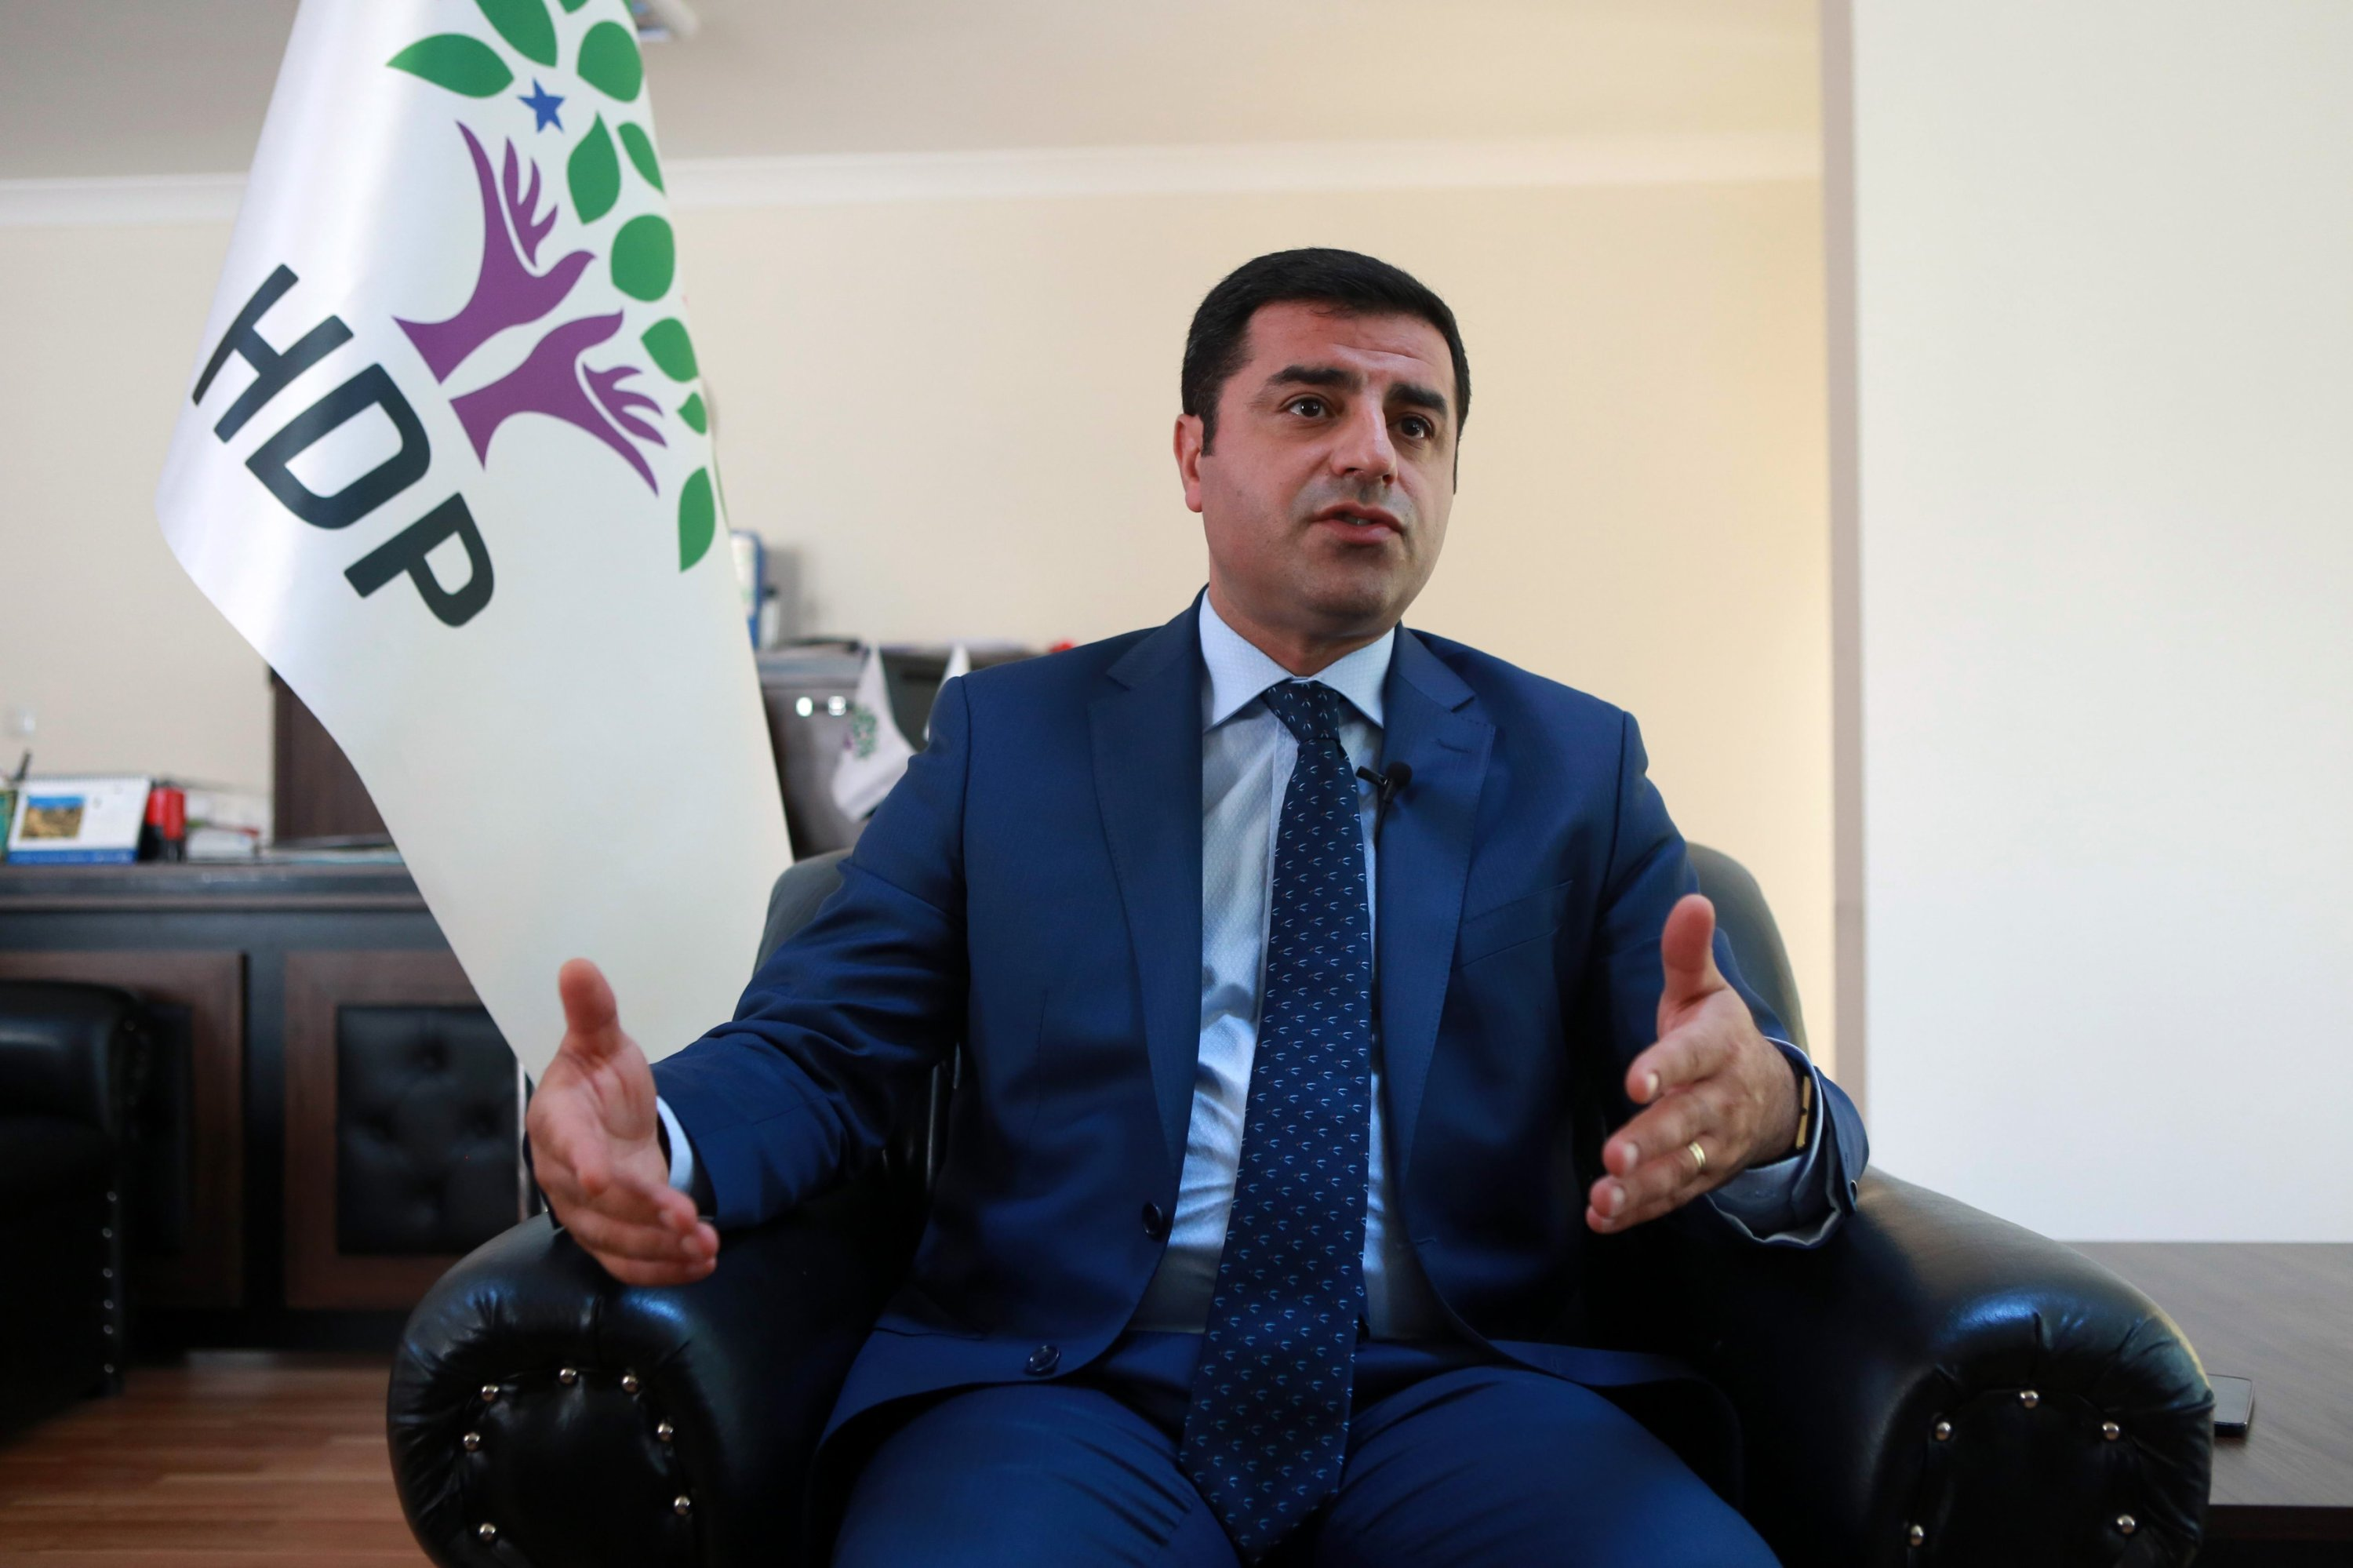 Former co-leader of the pro-PKK People's Democratic Party (HDP) Selahattin Demirtas speaks during an interview in Ankara, July 22, 2016. (AFP)